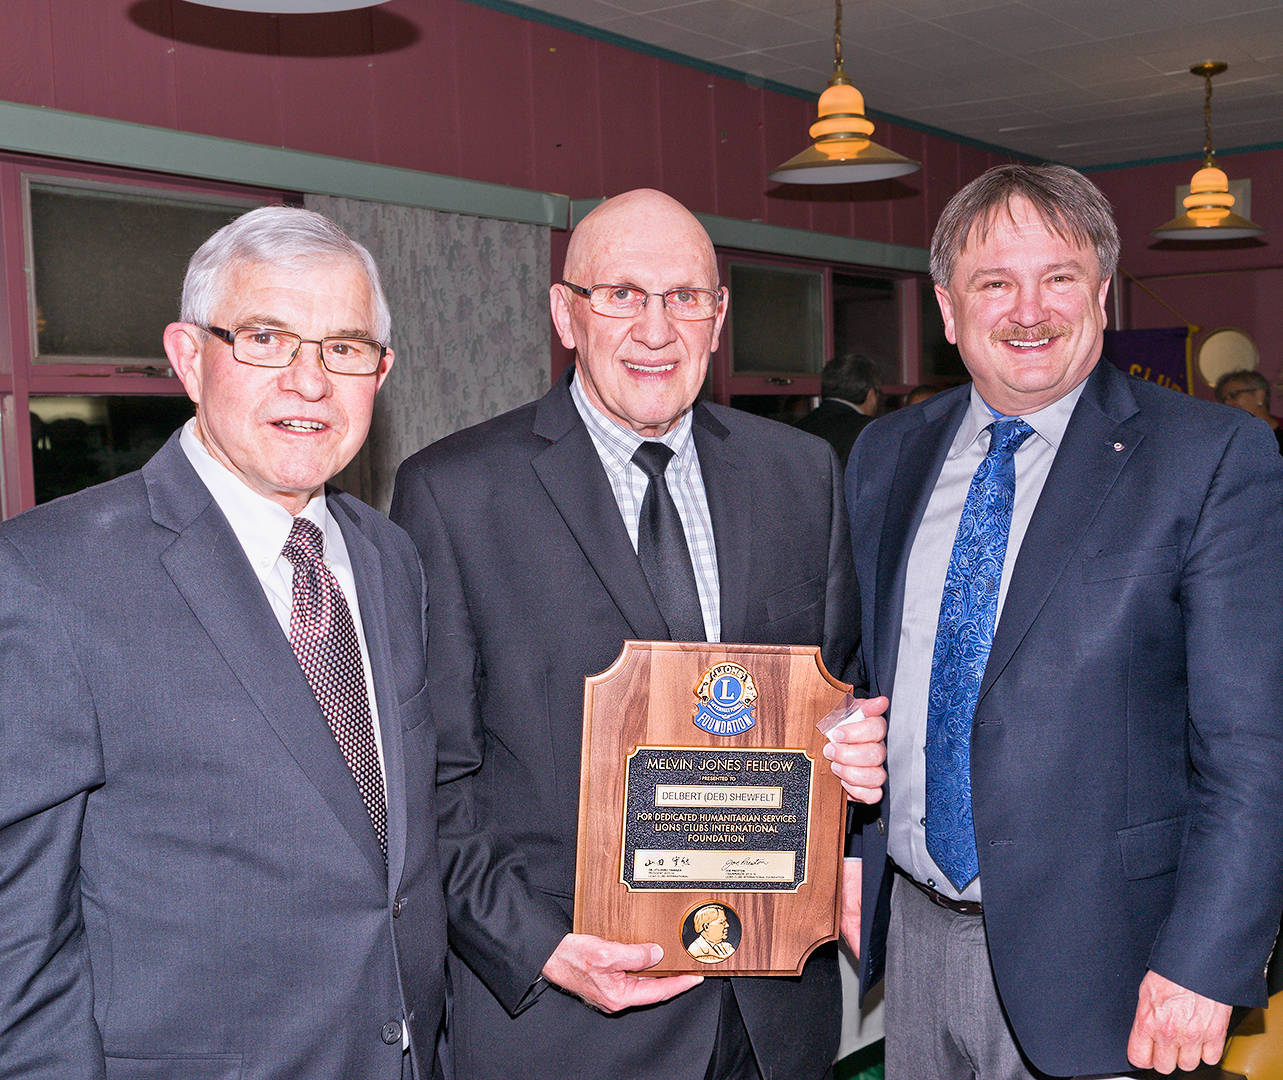 Lion President, Bob Robson and Lion John Grace present  Delbert (Deb) Shewfelt  with his Melvin Jones Fellowship Award.  As former Goderich Mayor, Deb was untiring with his work as a community leader.  Deb served as Councillor, Reeve and Mayorfor over 28 years.  He was a Huron county Councillor for 18 years, and Warden in 2008.   The results of Deb's leadership are visible throughout our Town through things like Doctor Recruitment, the Maitland Recreation Centre, the Maitland Valley Medical Centre and the recovery after the 2011 Tornado.  These were a few of the many reasons why Deb was chosen for this award!